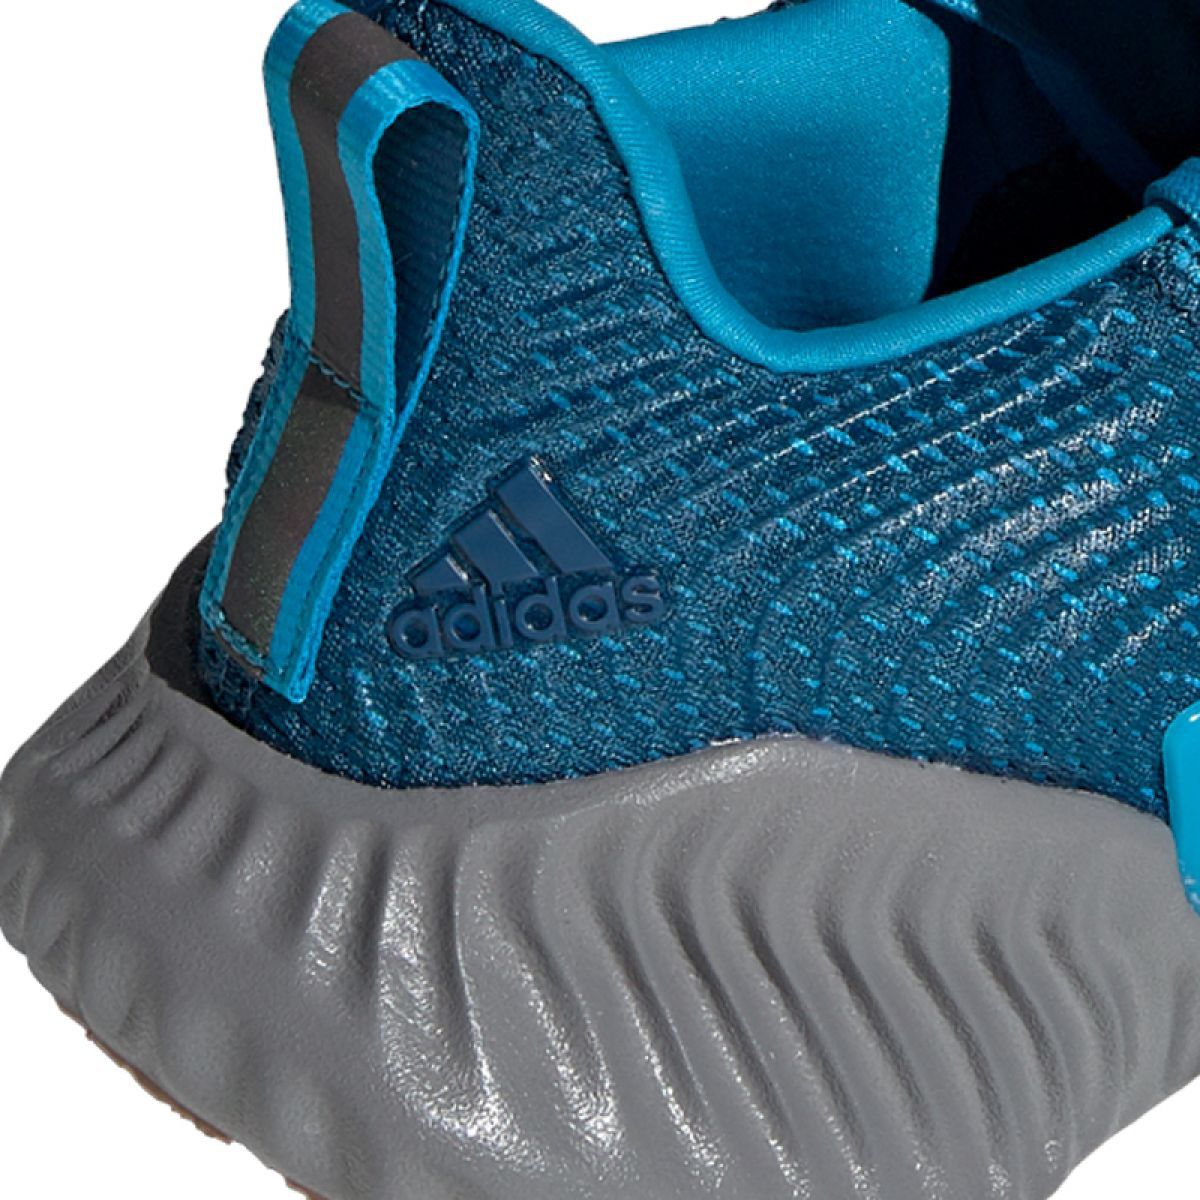 Blue shoes, Adidas running shoes